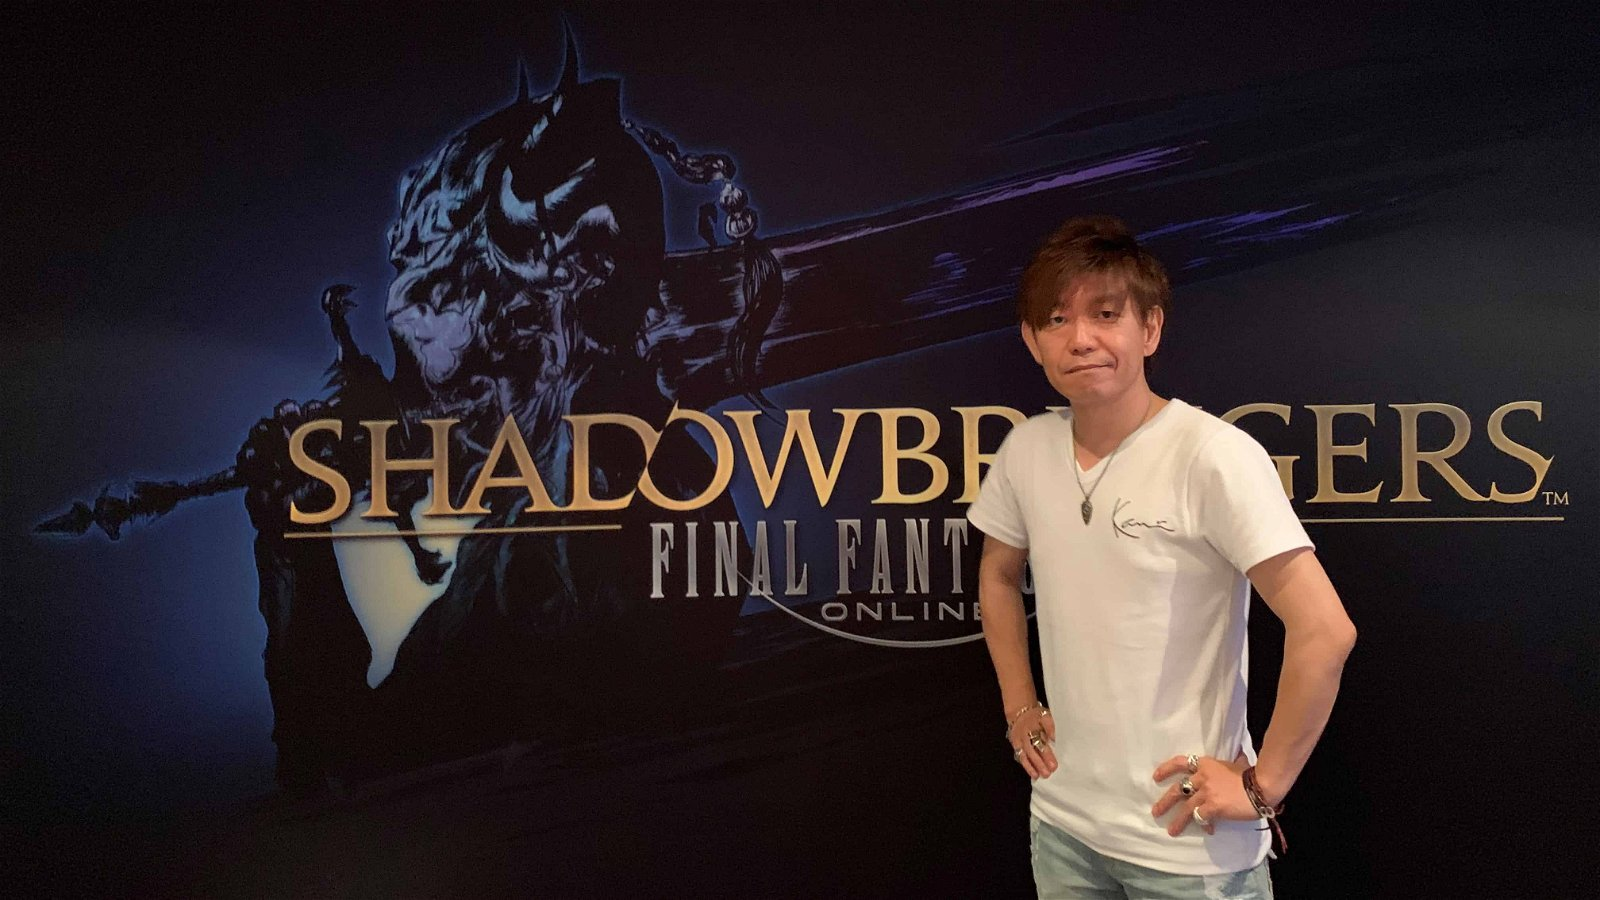 Final Fantasy XIV: Shadowbringers E3 2019 Interview with Naoki